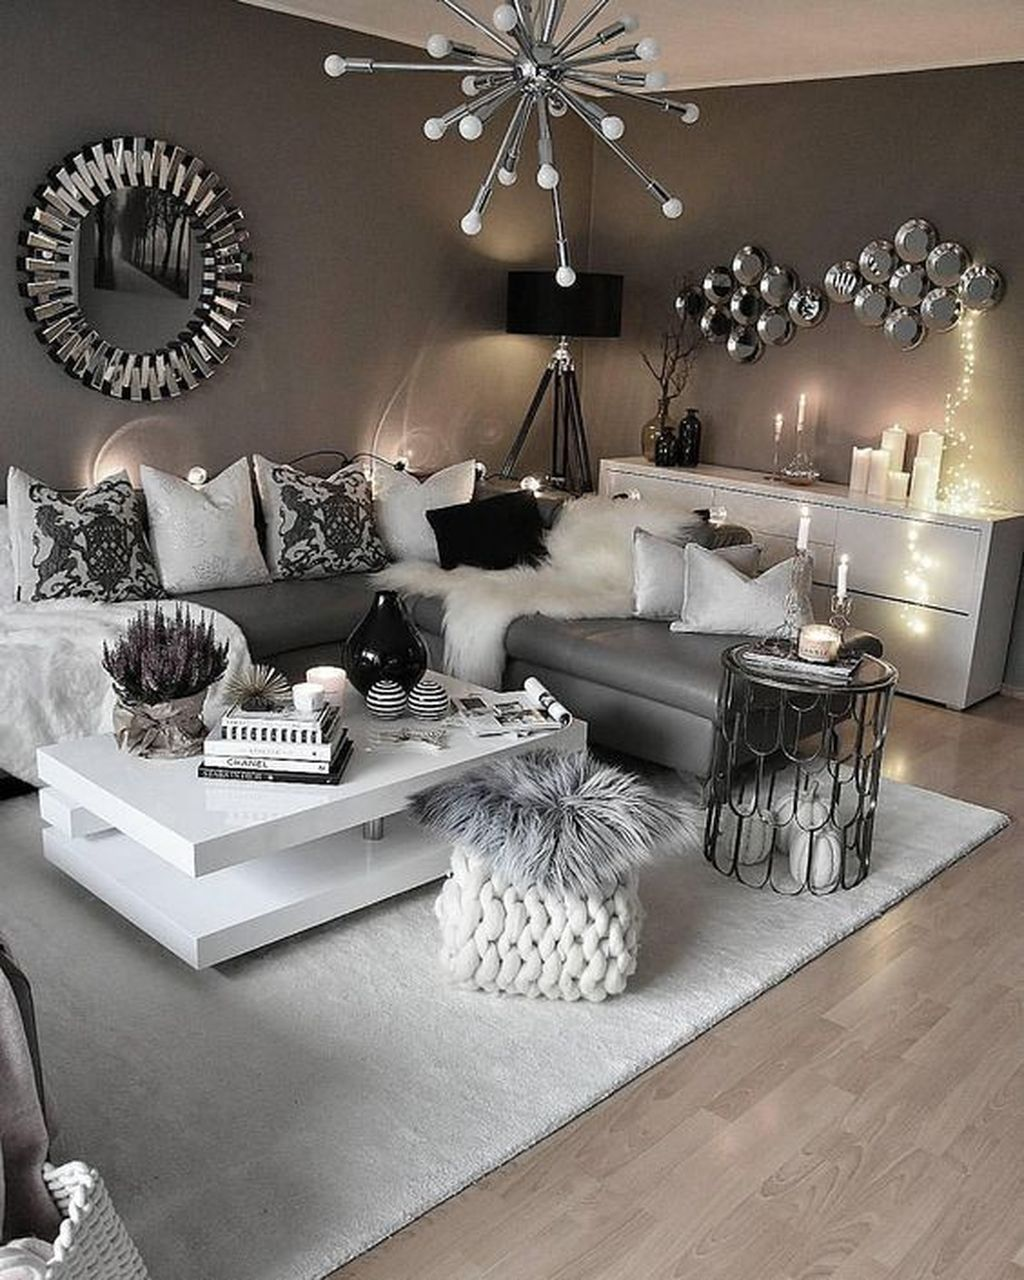 20 Living Room Blinds Ideas 2021 In 2020 Silver Living